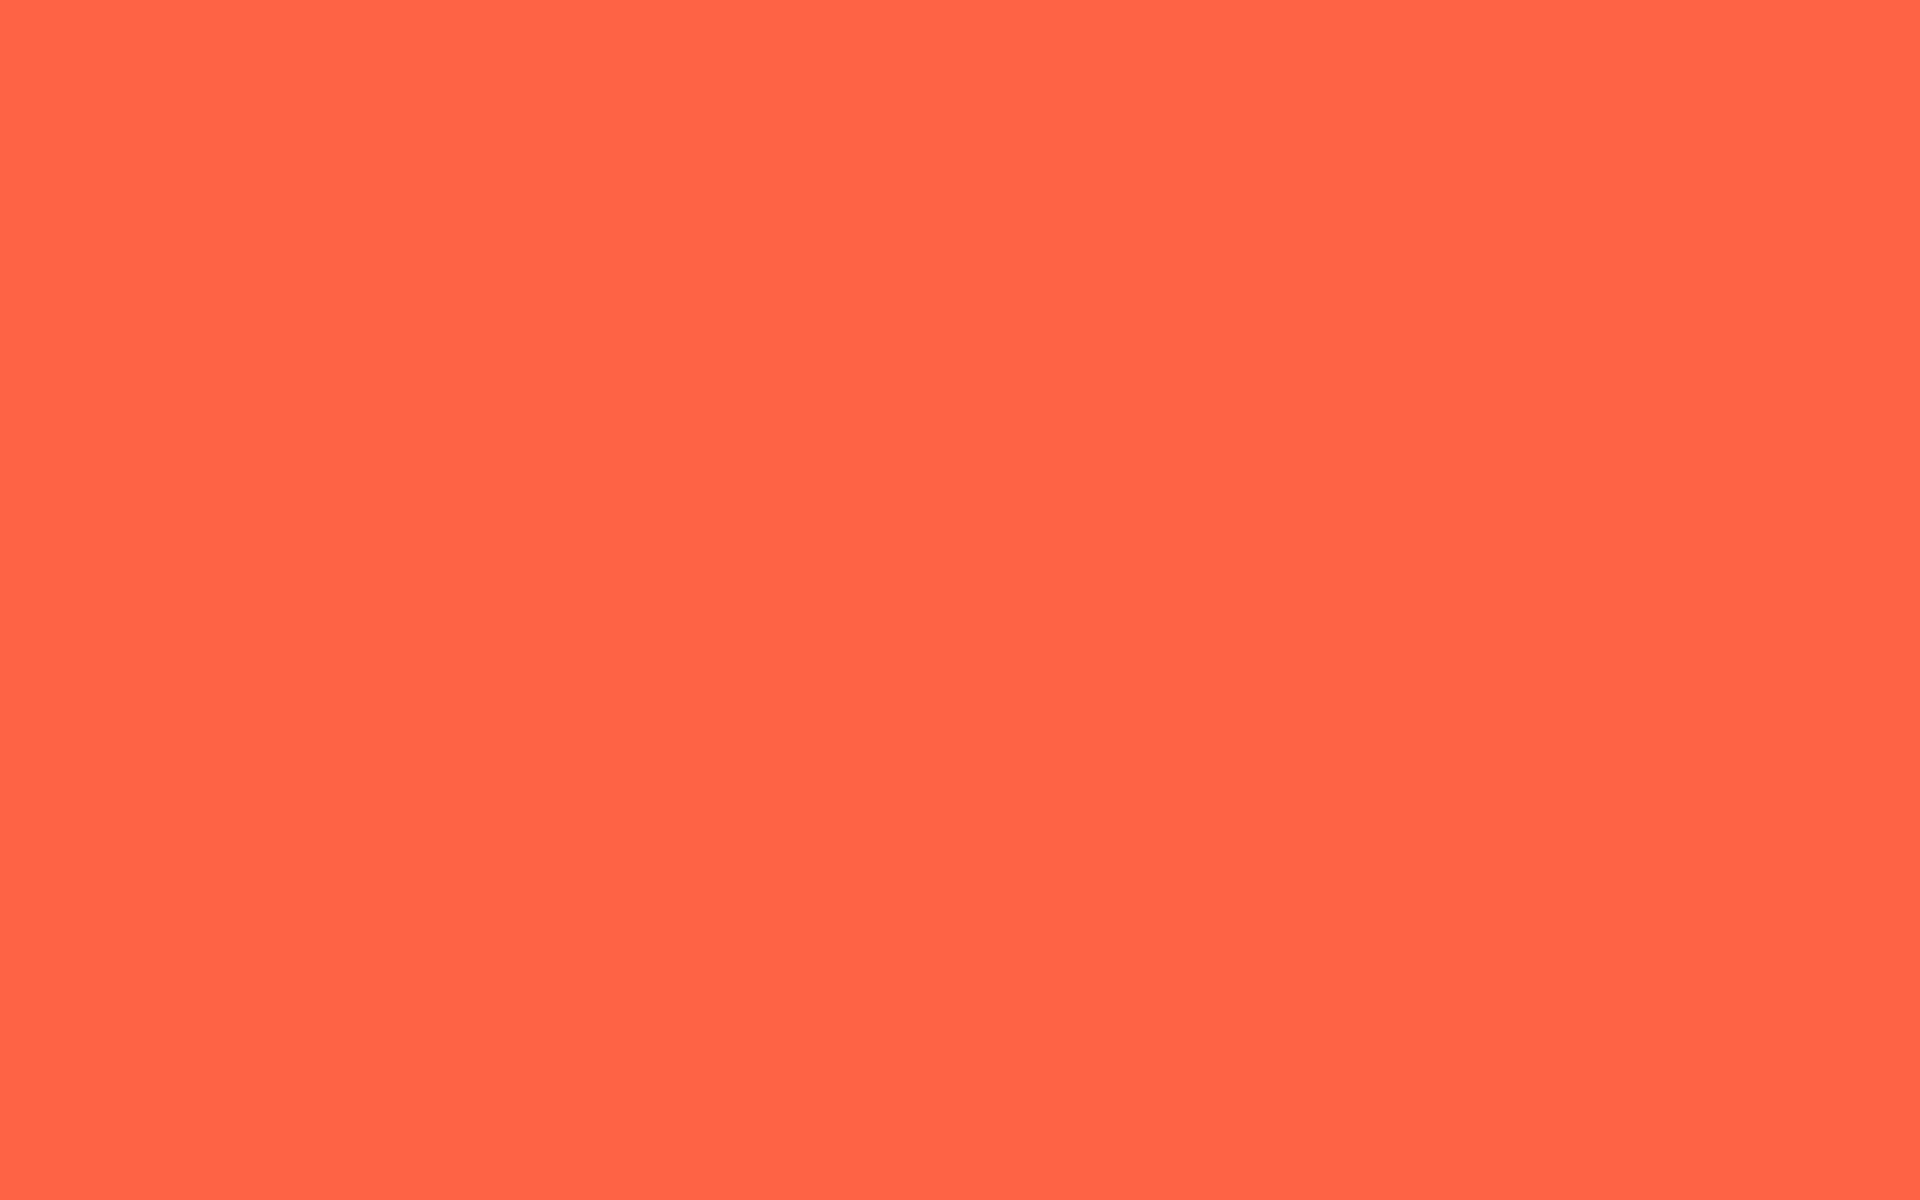 1920x1200 Tomato Solid Color Background